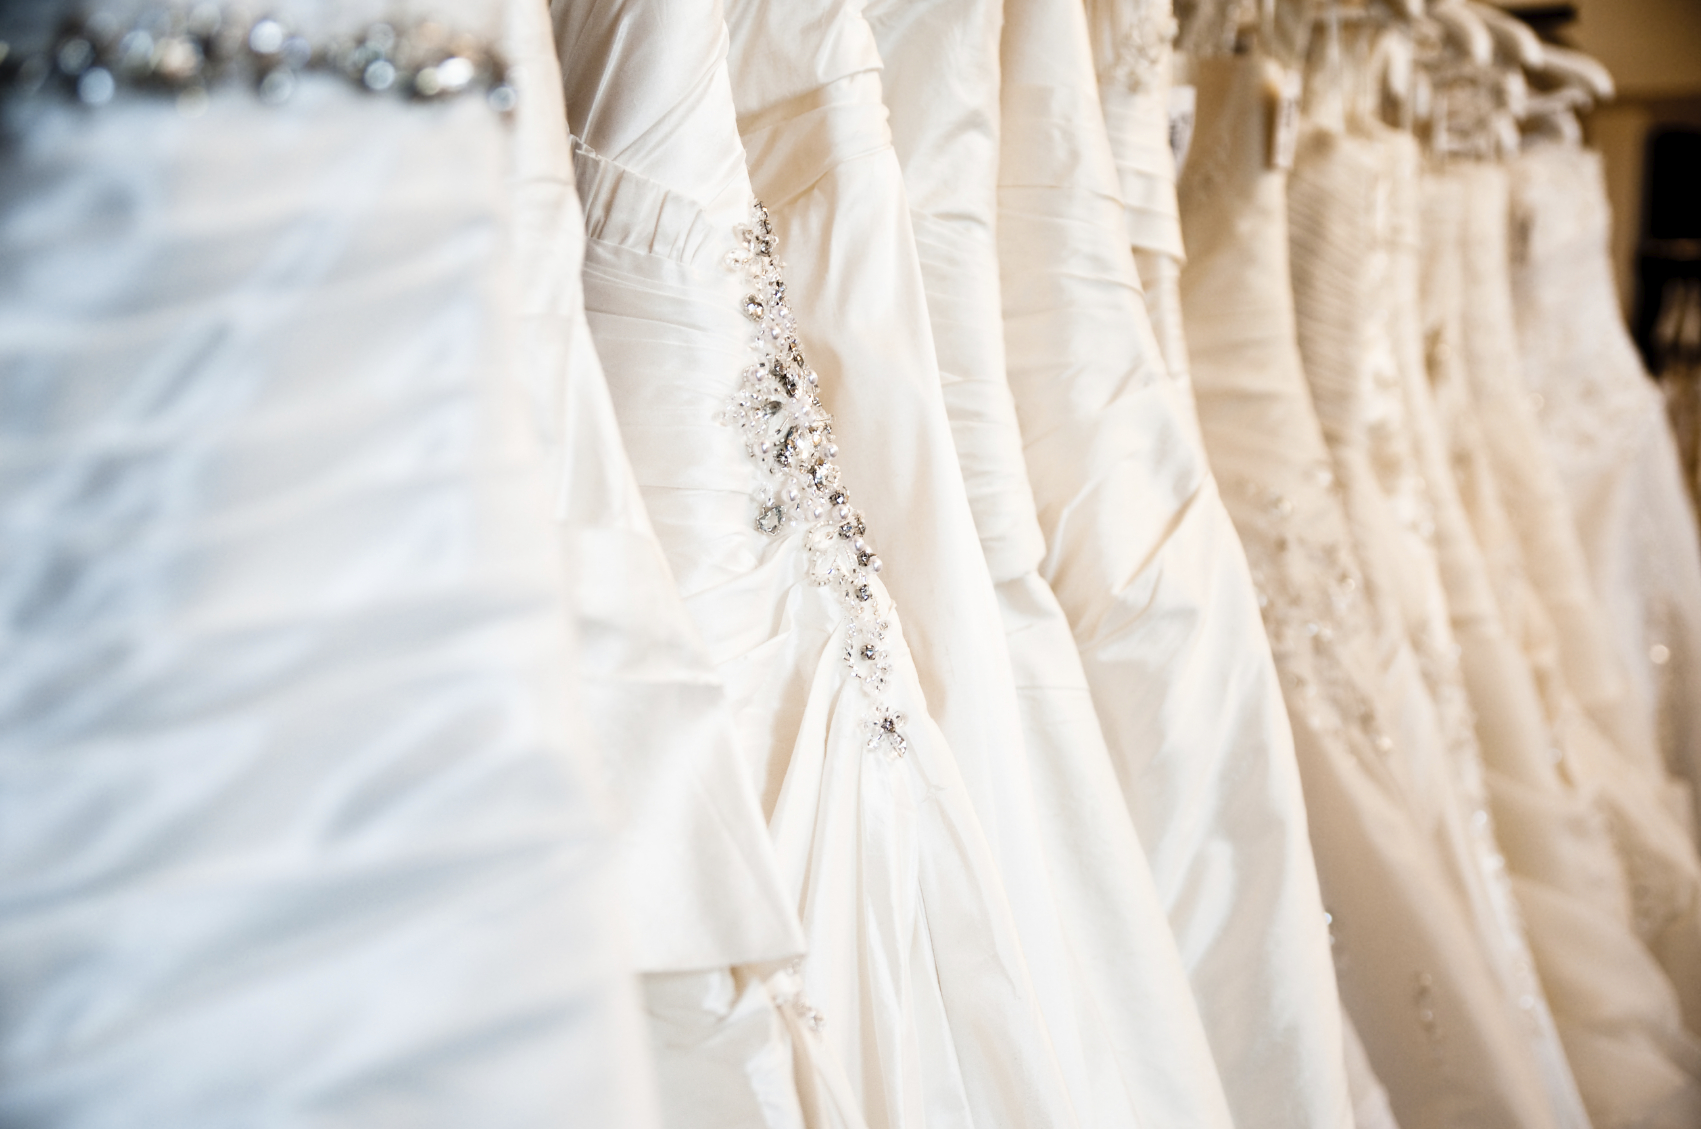 how to clean wedding dress with oxiclean